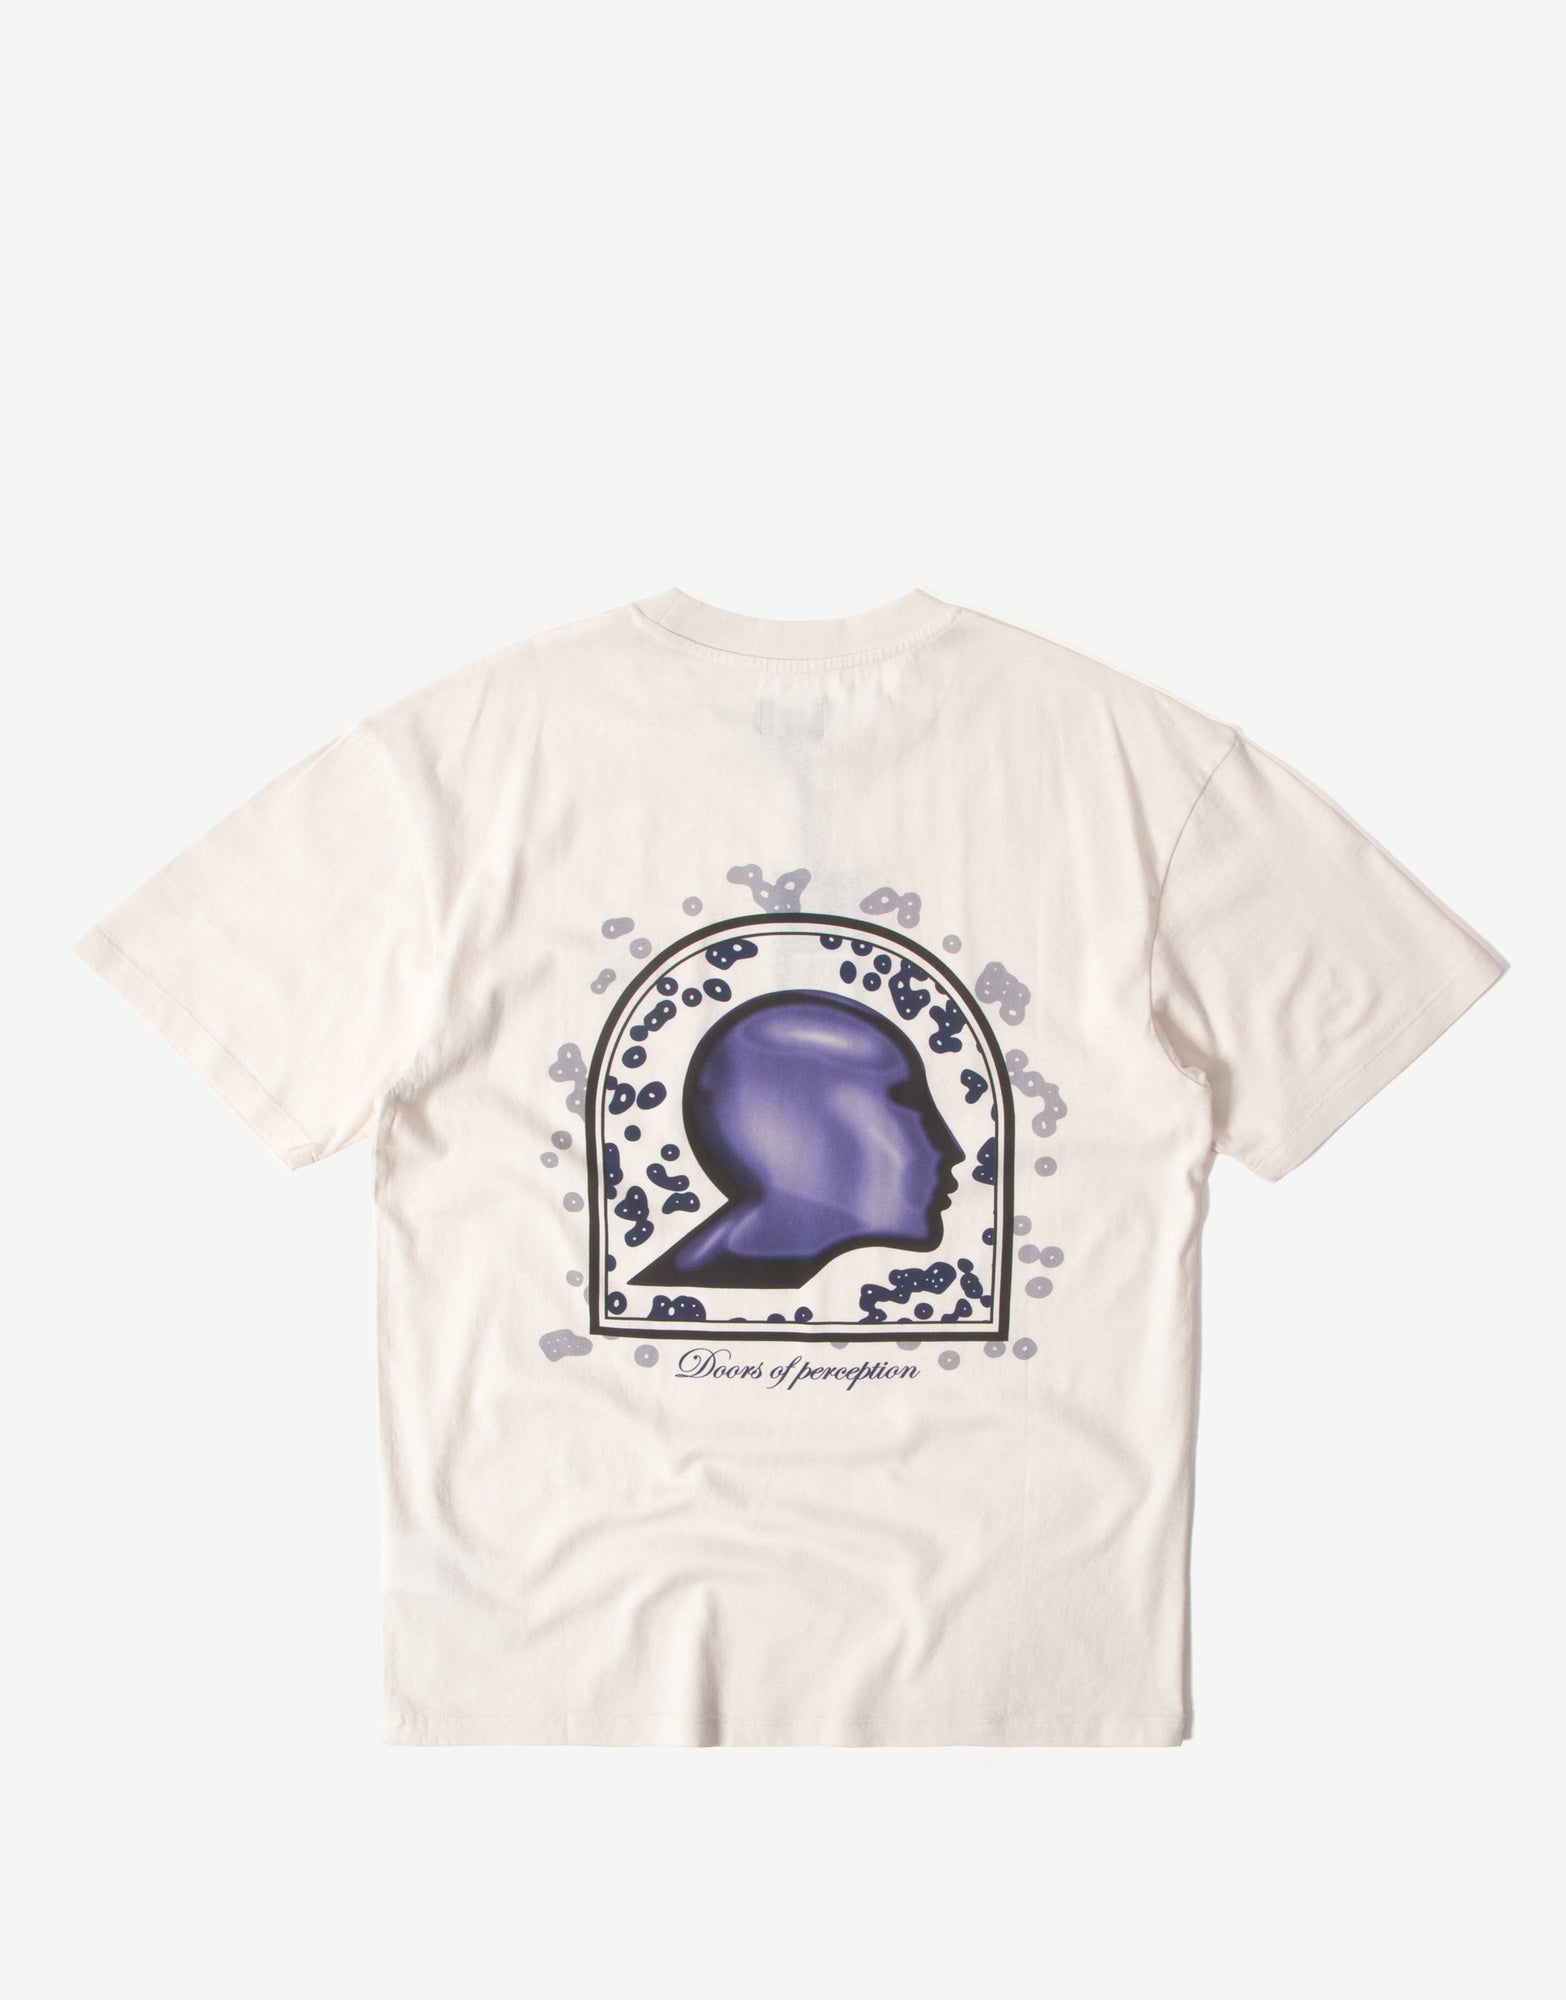 Edwin Doors of Perception T Shirt - Whisper White